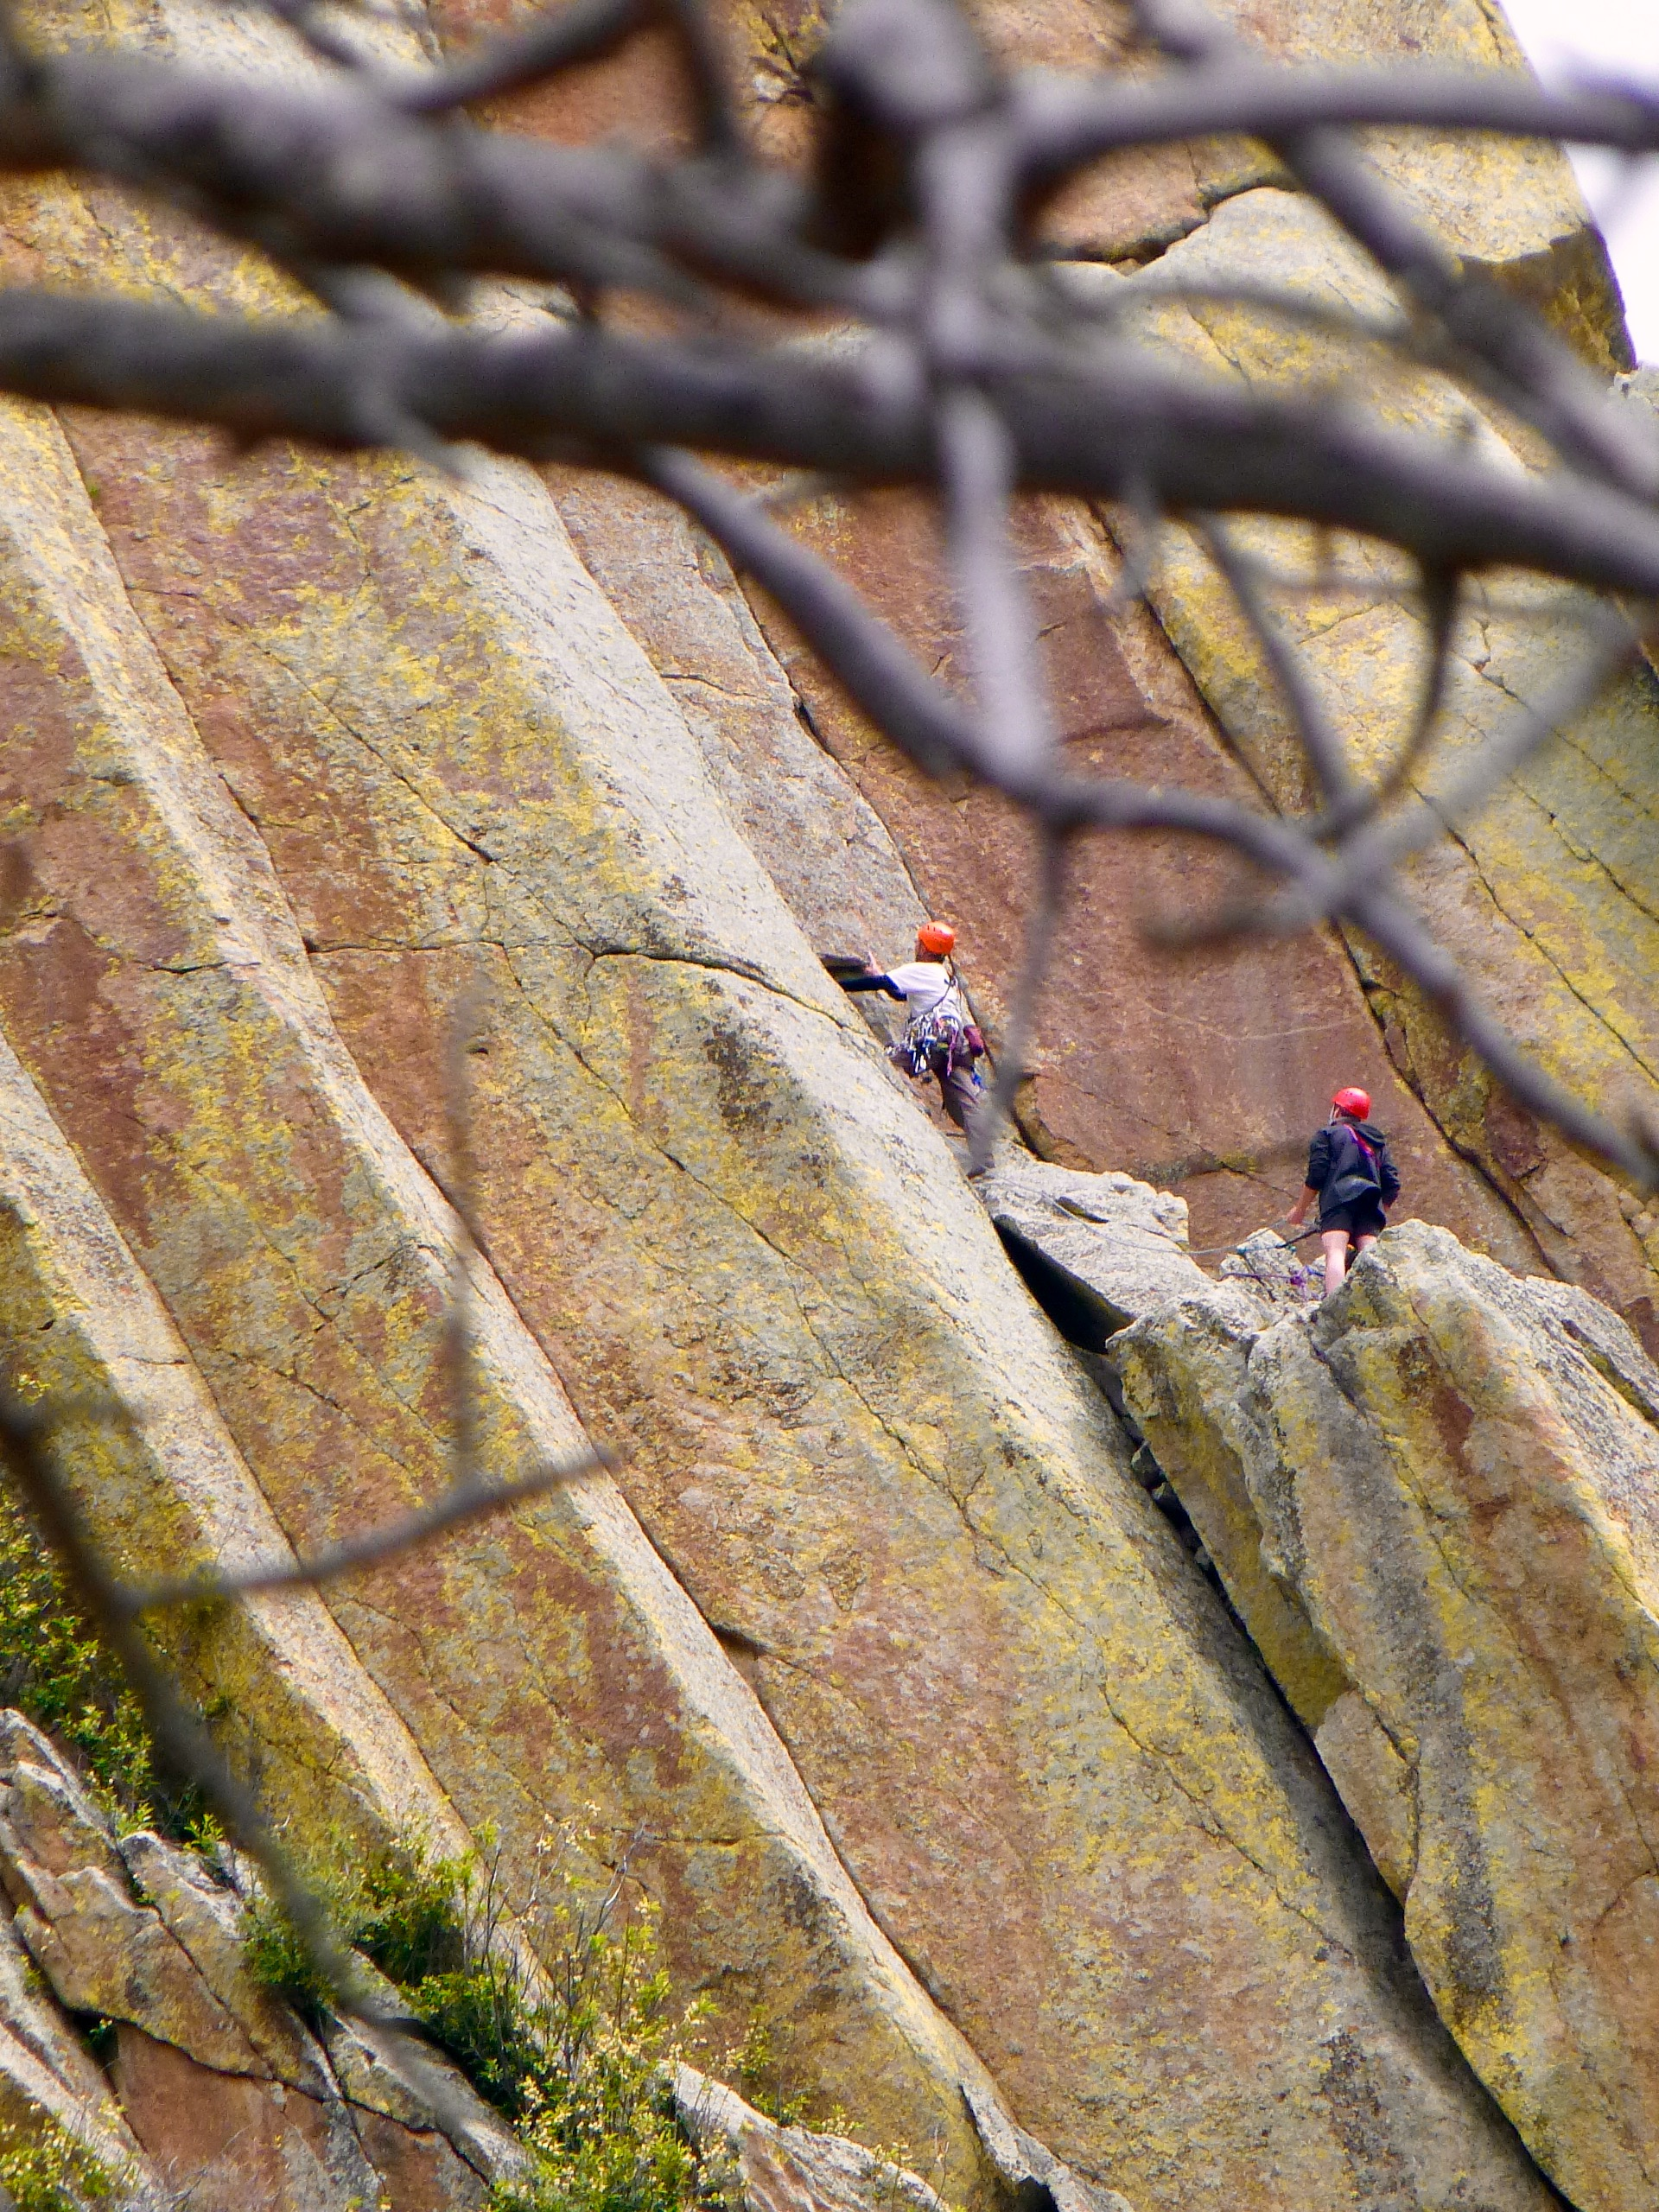 Late in the day, we watched the climbers with our binoculars, rappele back down.  The descent was much quicker!